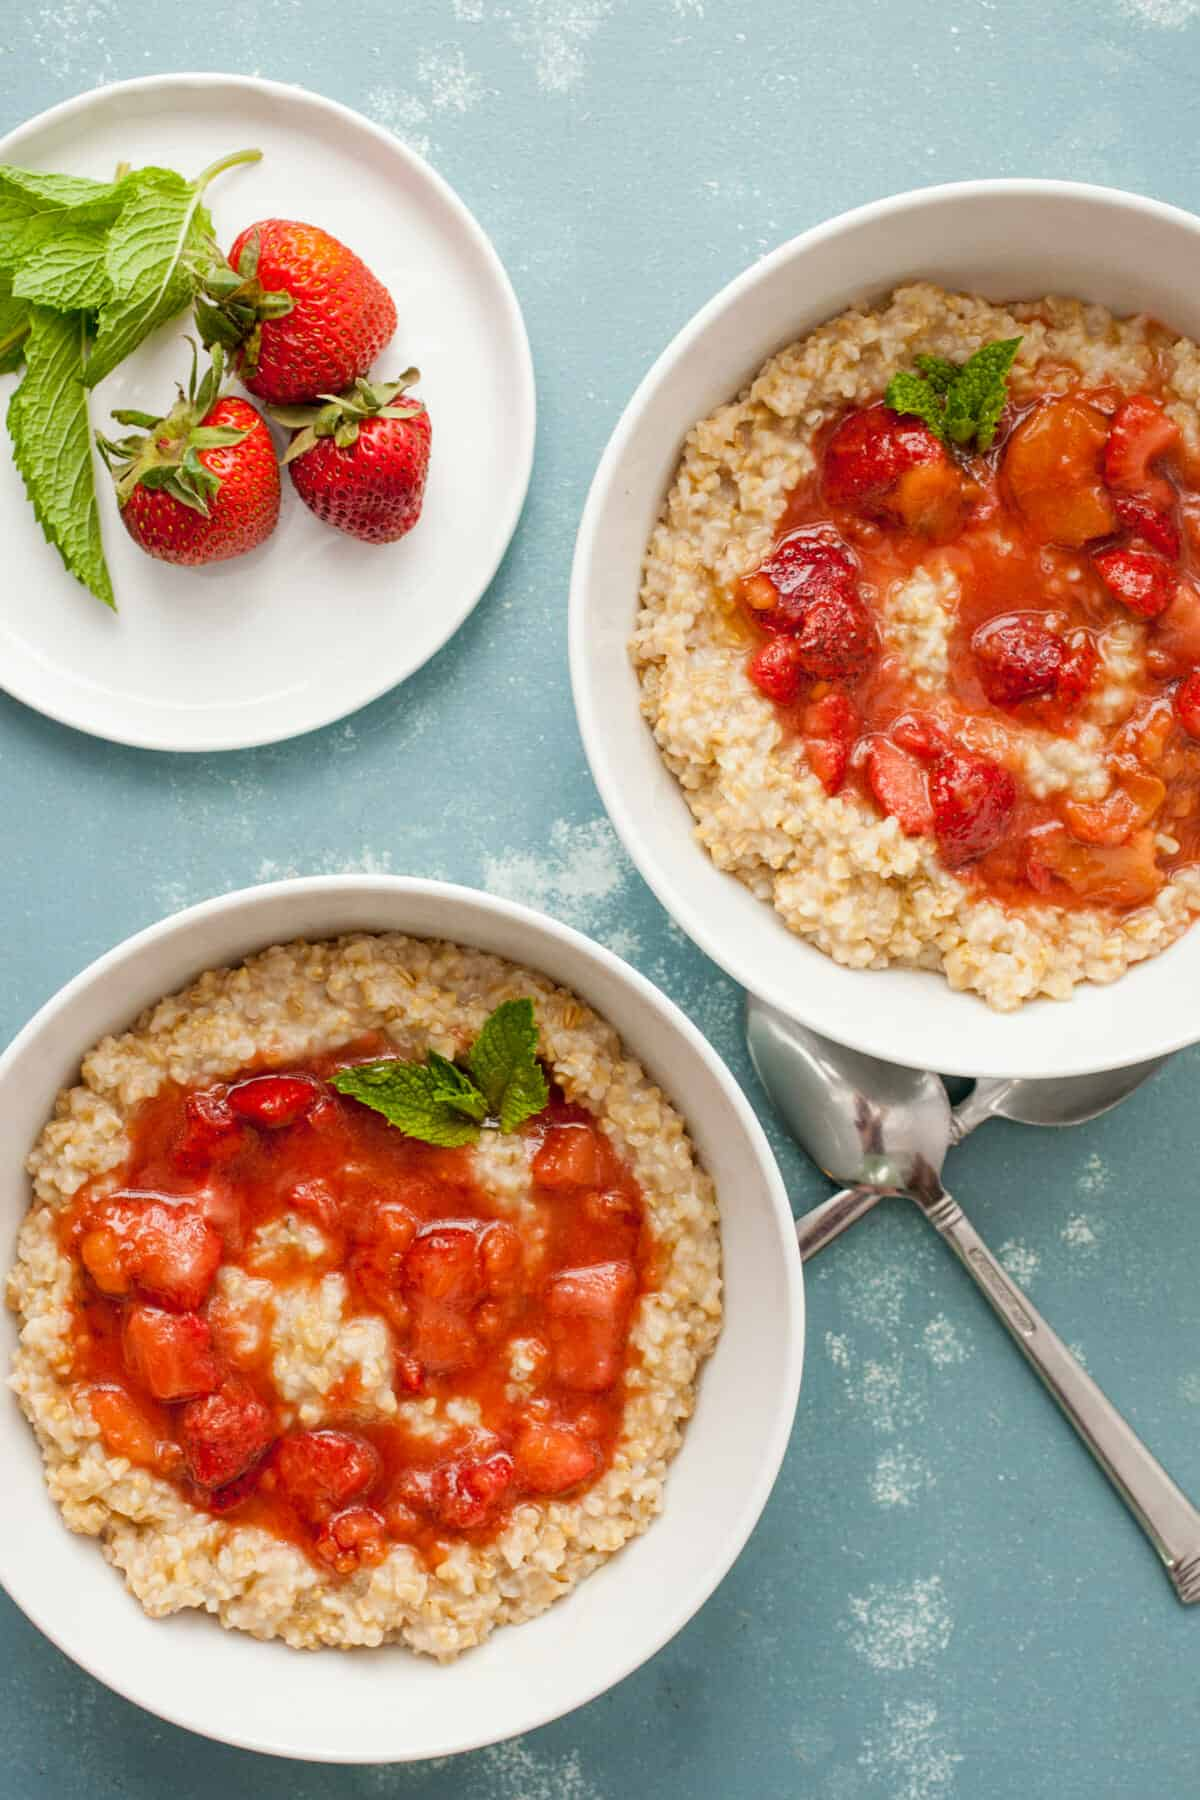 Strawberry Rhubarb Oatmeal Bowls: While you can find fresh rhubarb, add these simple oatmeal bowls to your breakfast list! I like to use steel cut oats, but any will work! | macheesmo.com